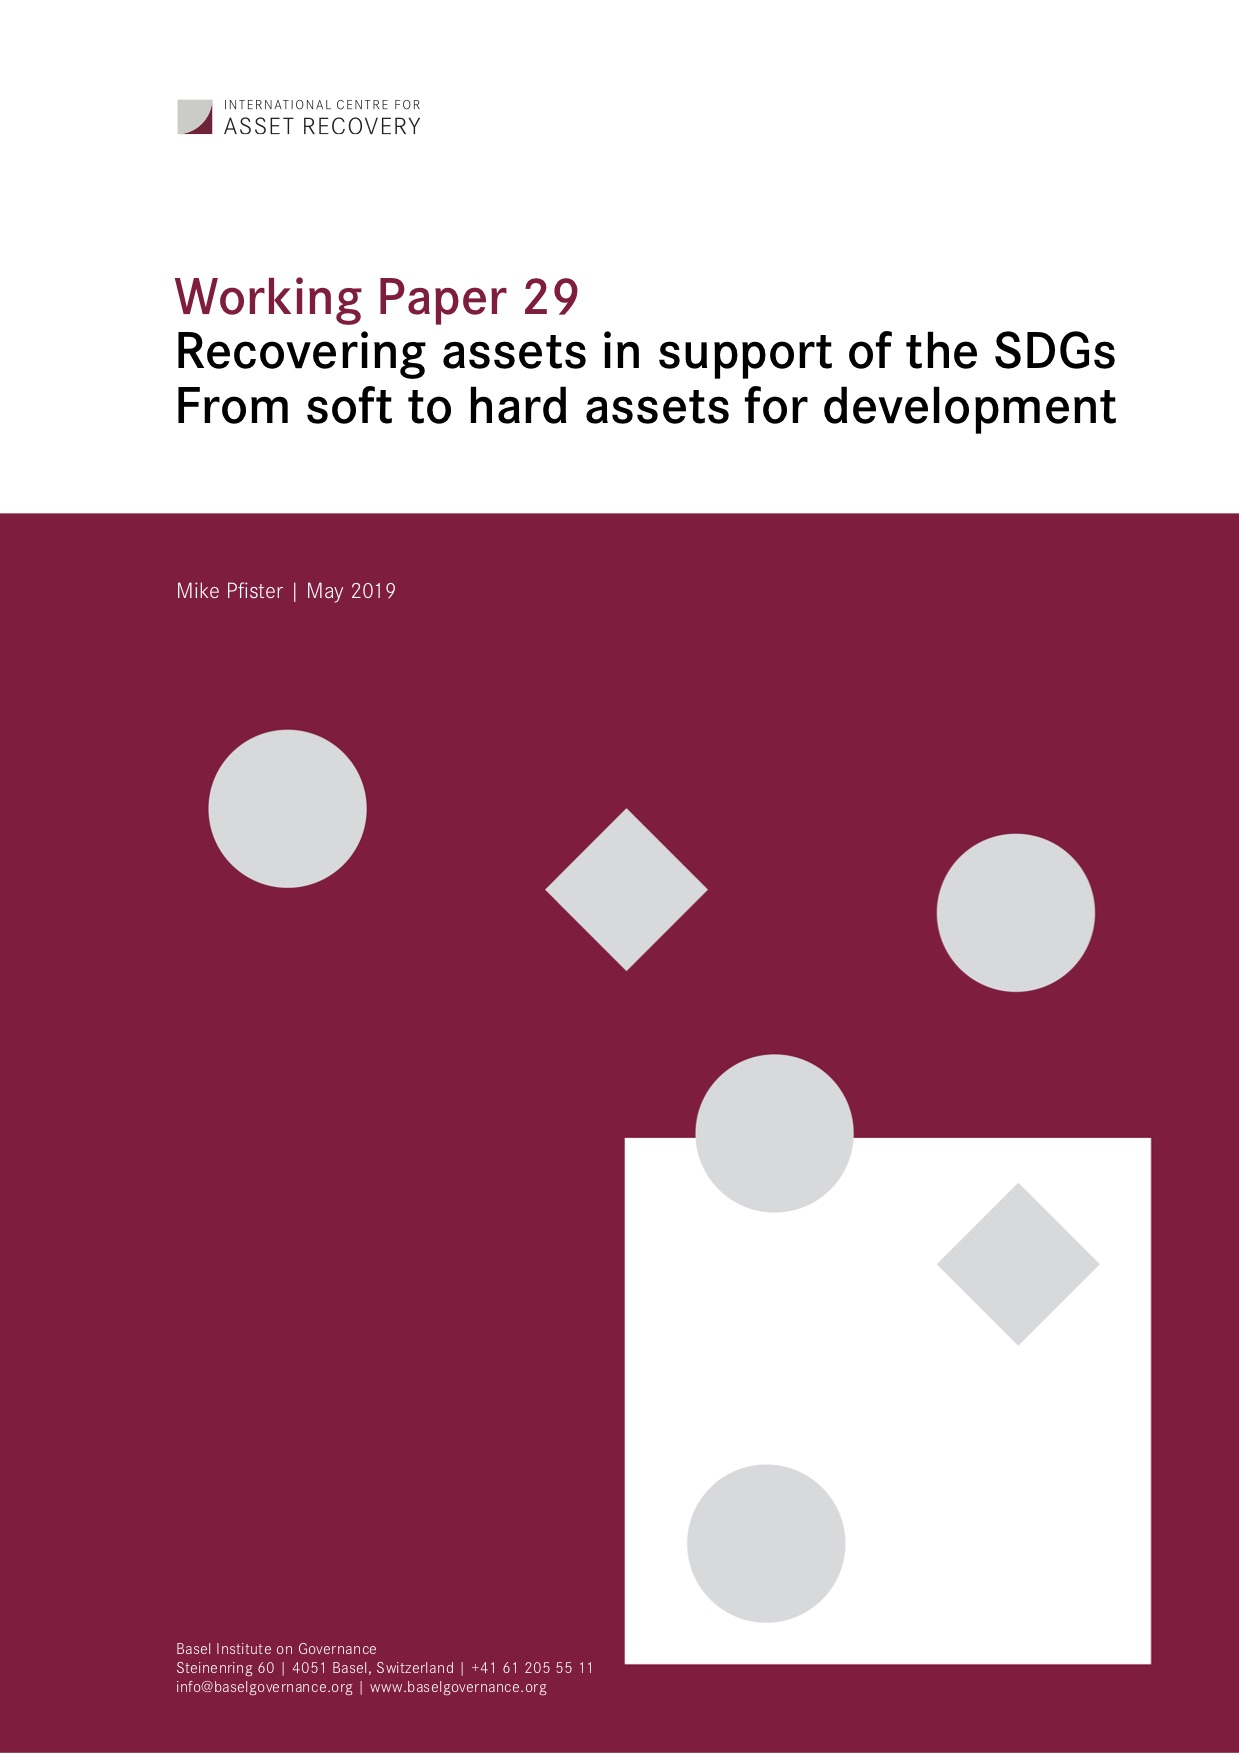 Working Paper 29: Recovering assets in support of the SDGs From soft to hard assets for development